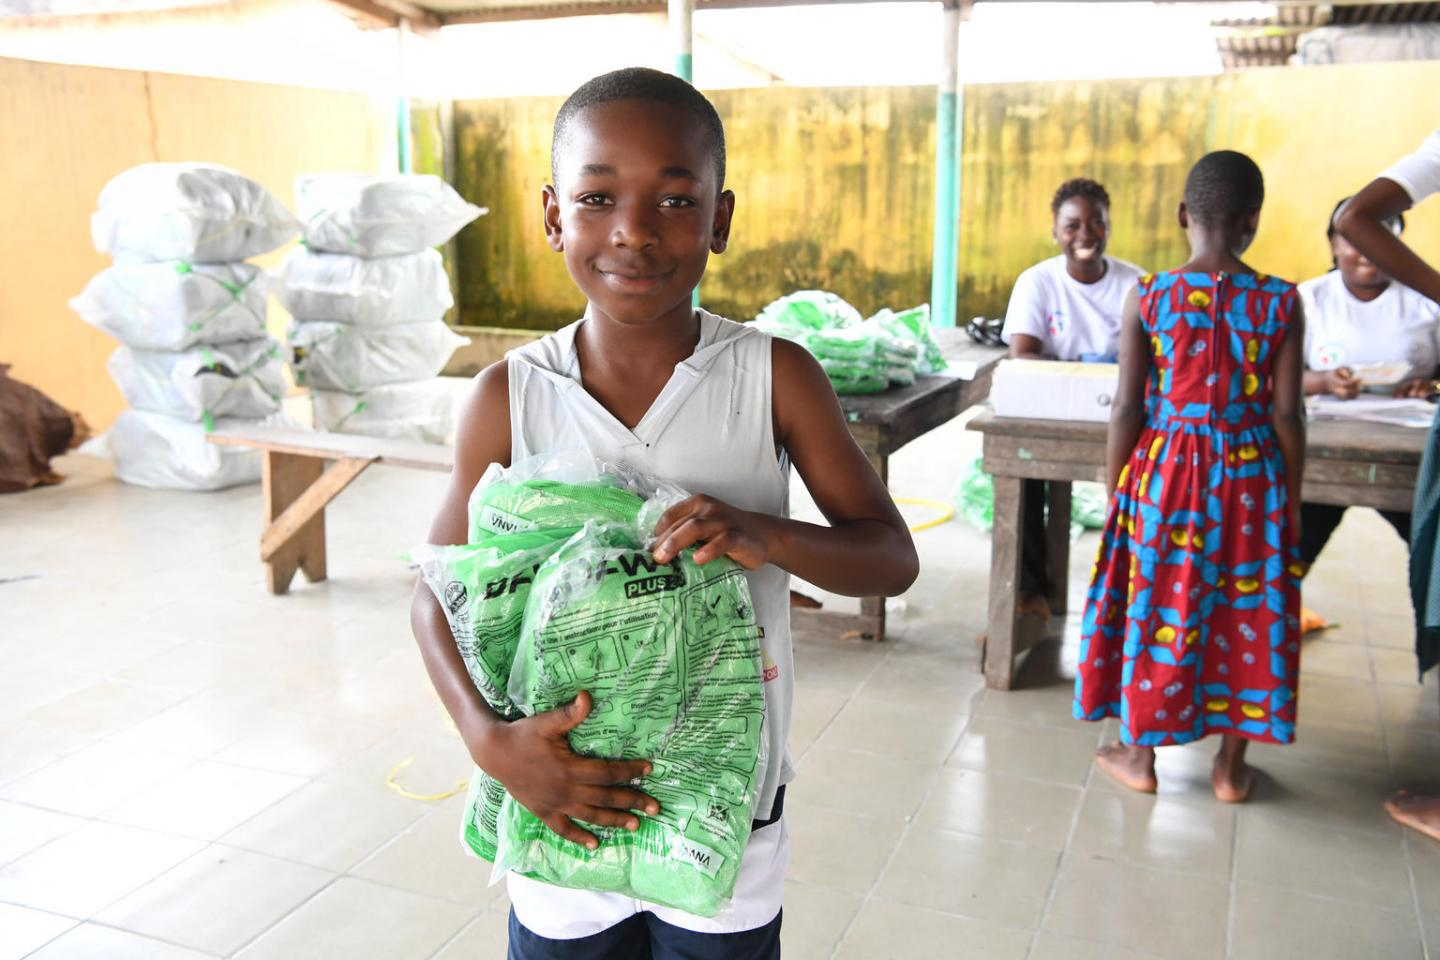 In the village of Sikensi, in the South East of Côte d'Ivoire, a boy receives a insecticide treated mosquito net.